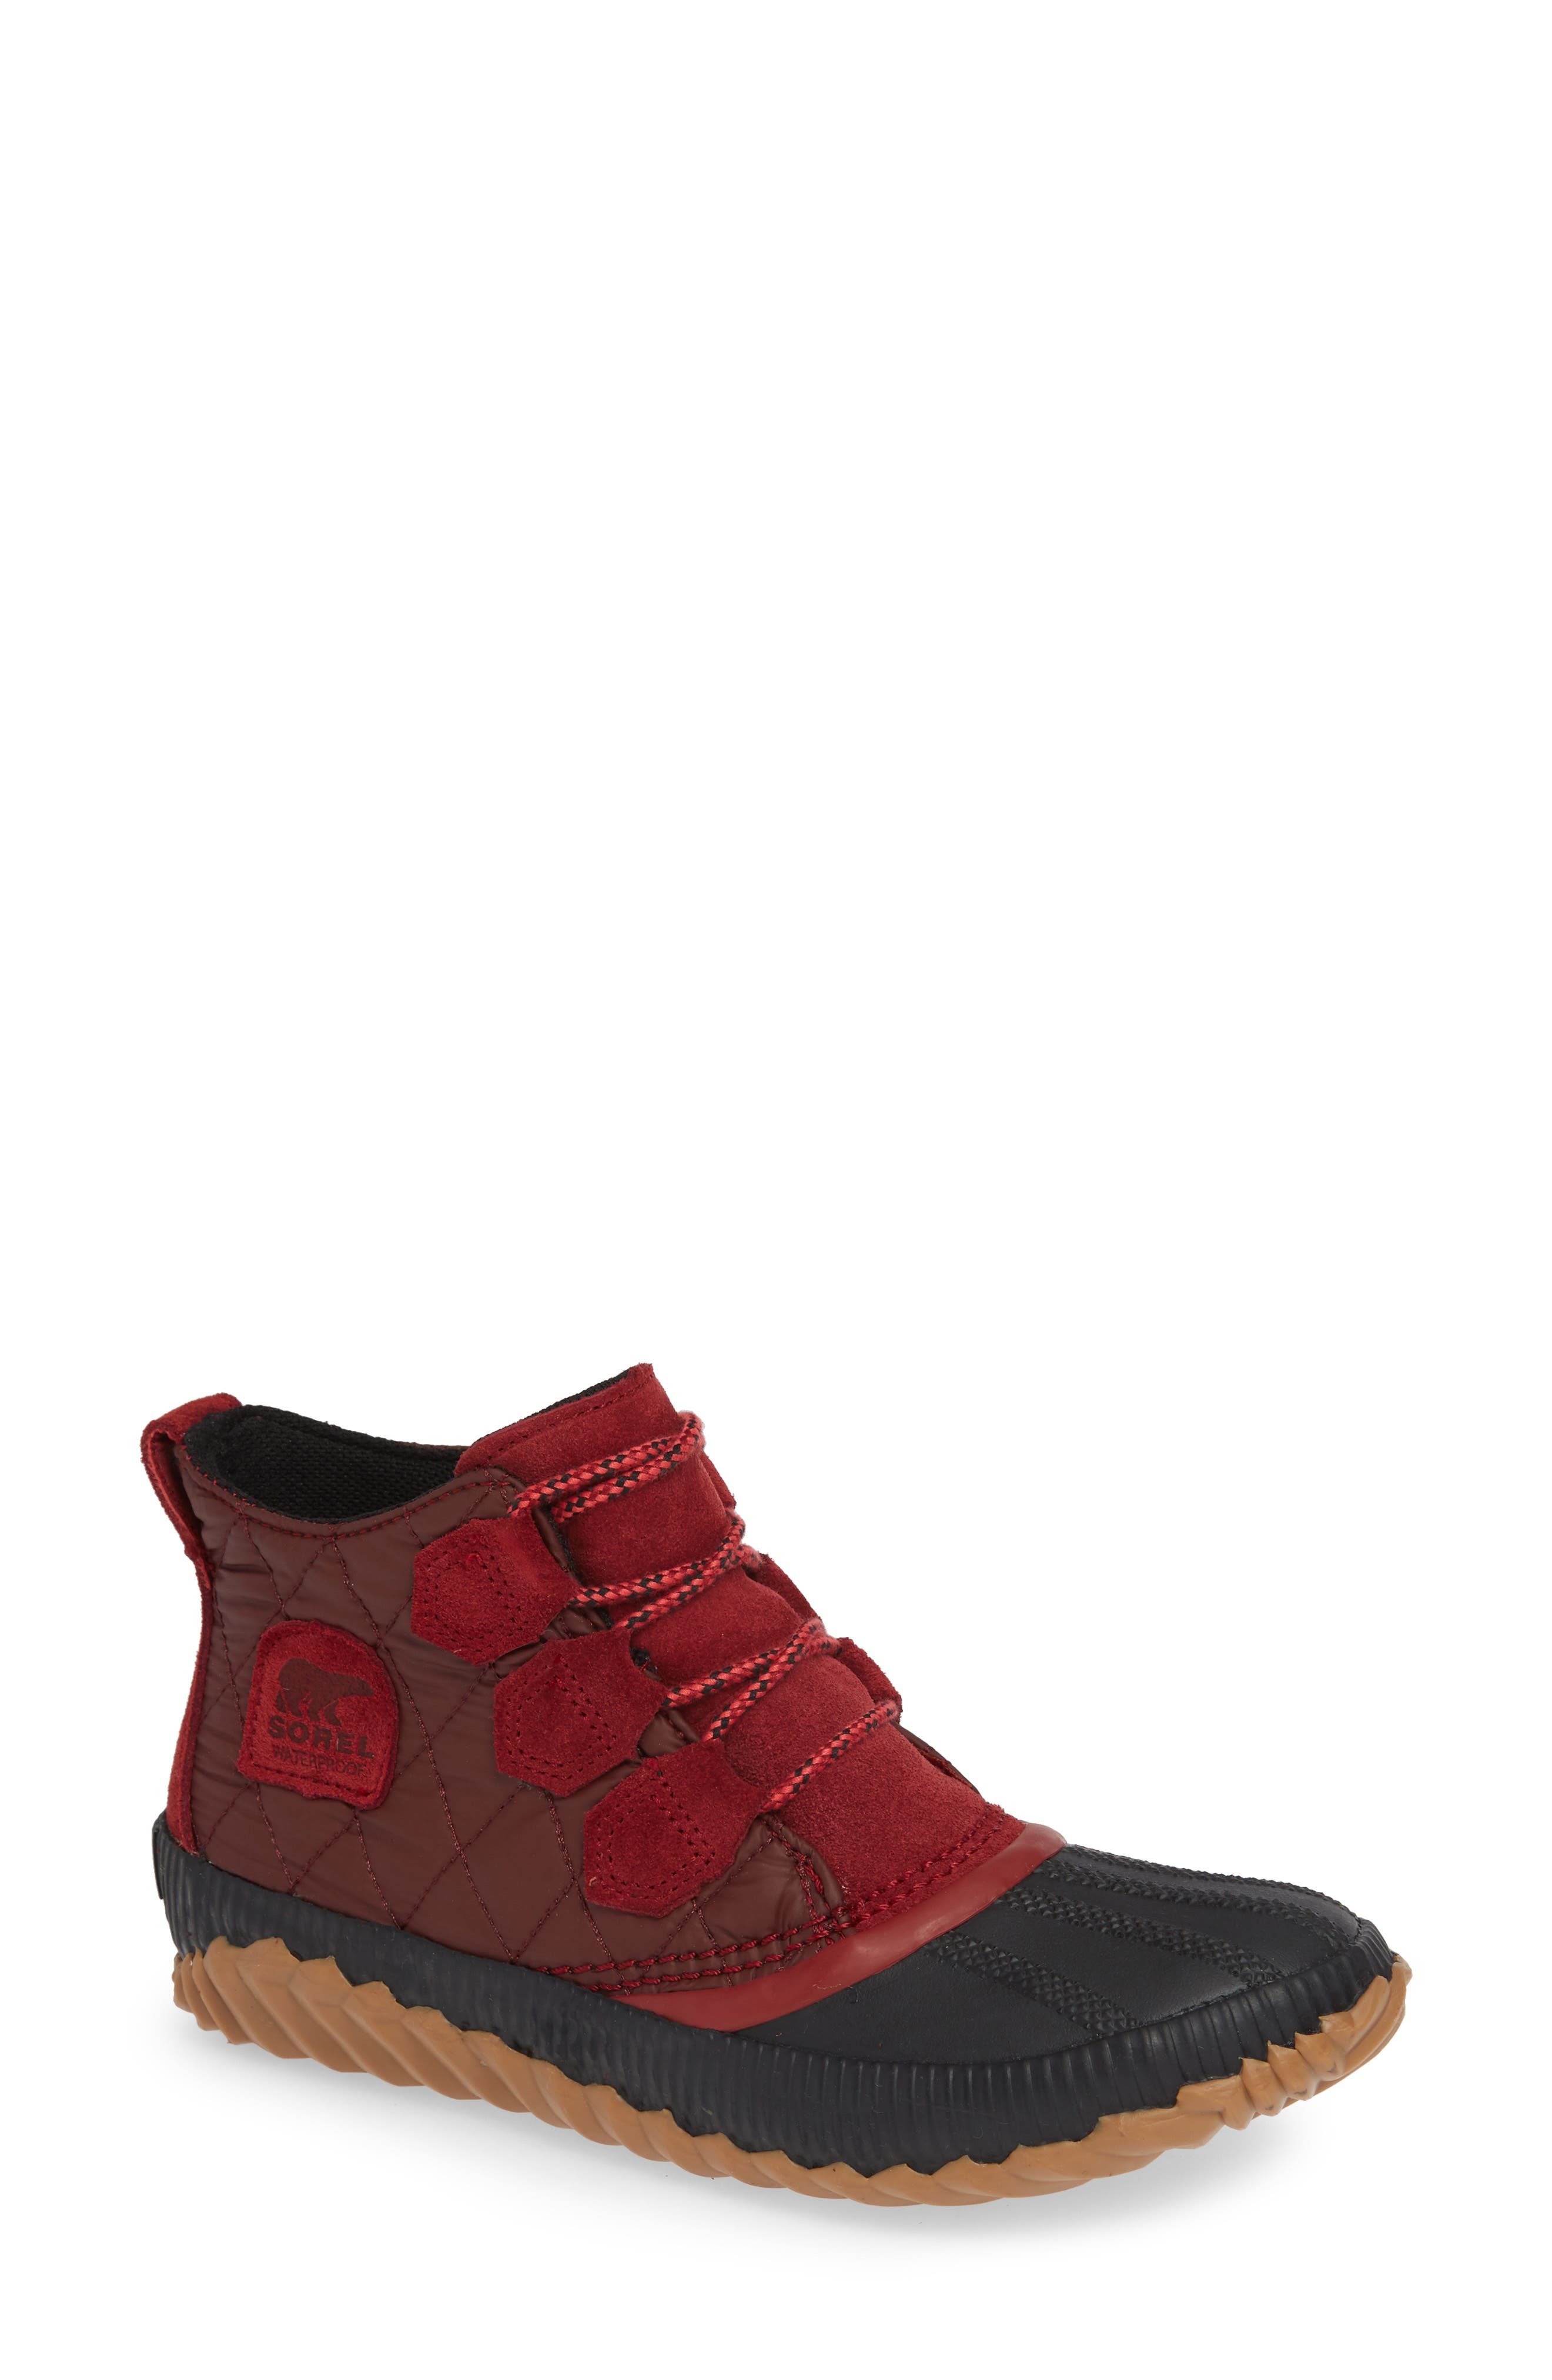 Out 'N' About Plus Camp Waterproof Bootie,                         Main,                         color, CAMP/ RED ELEMENT